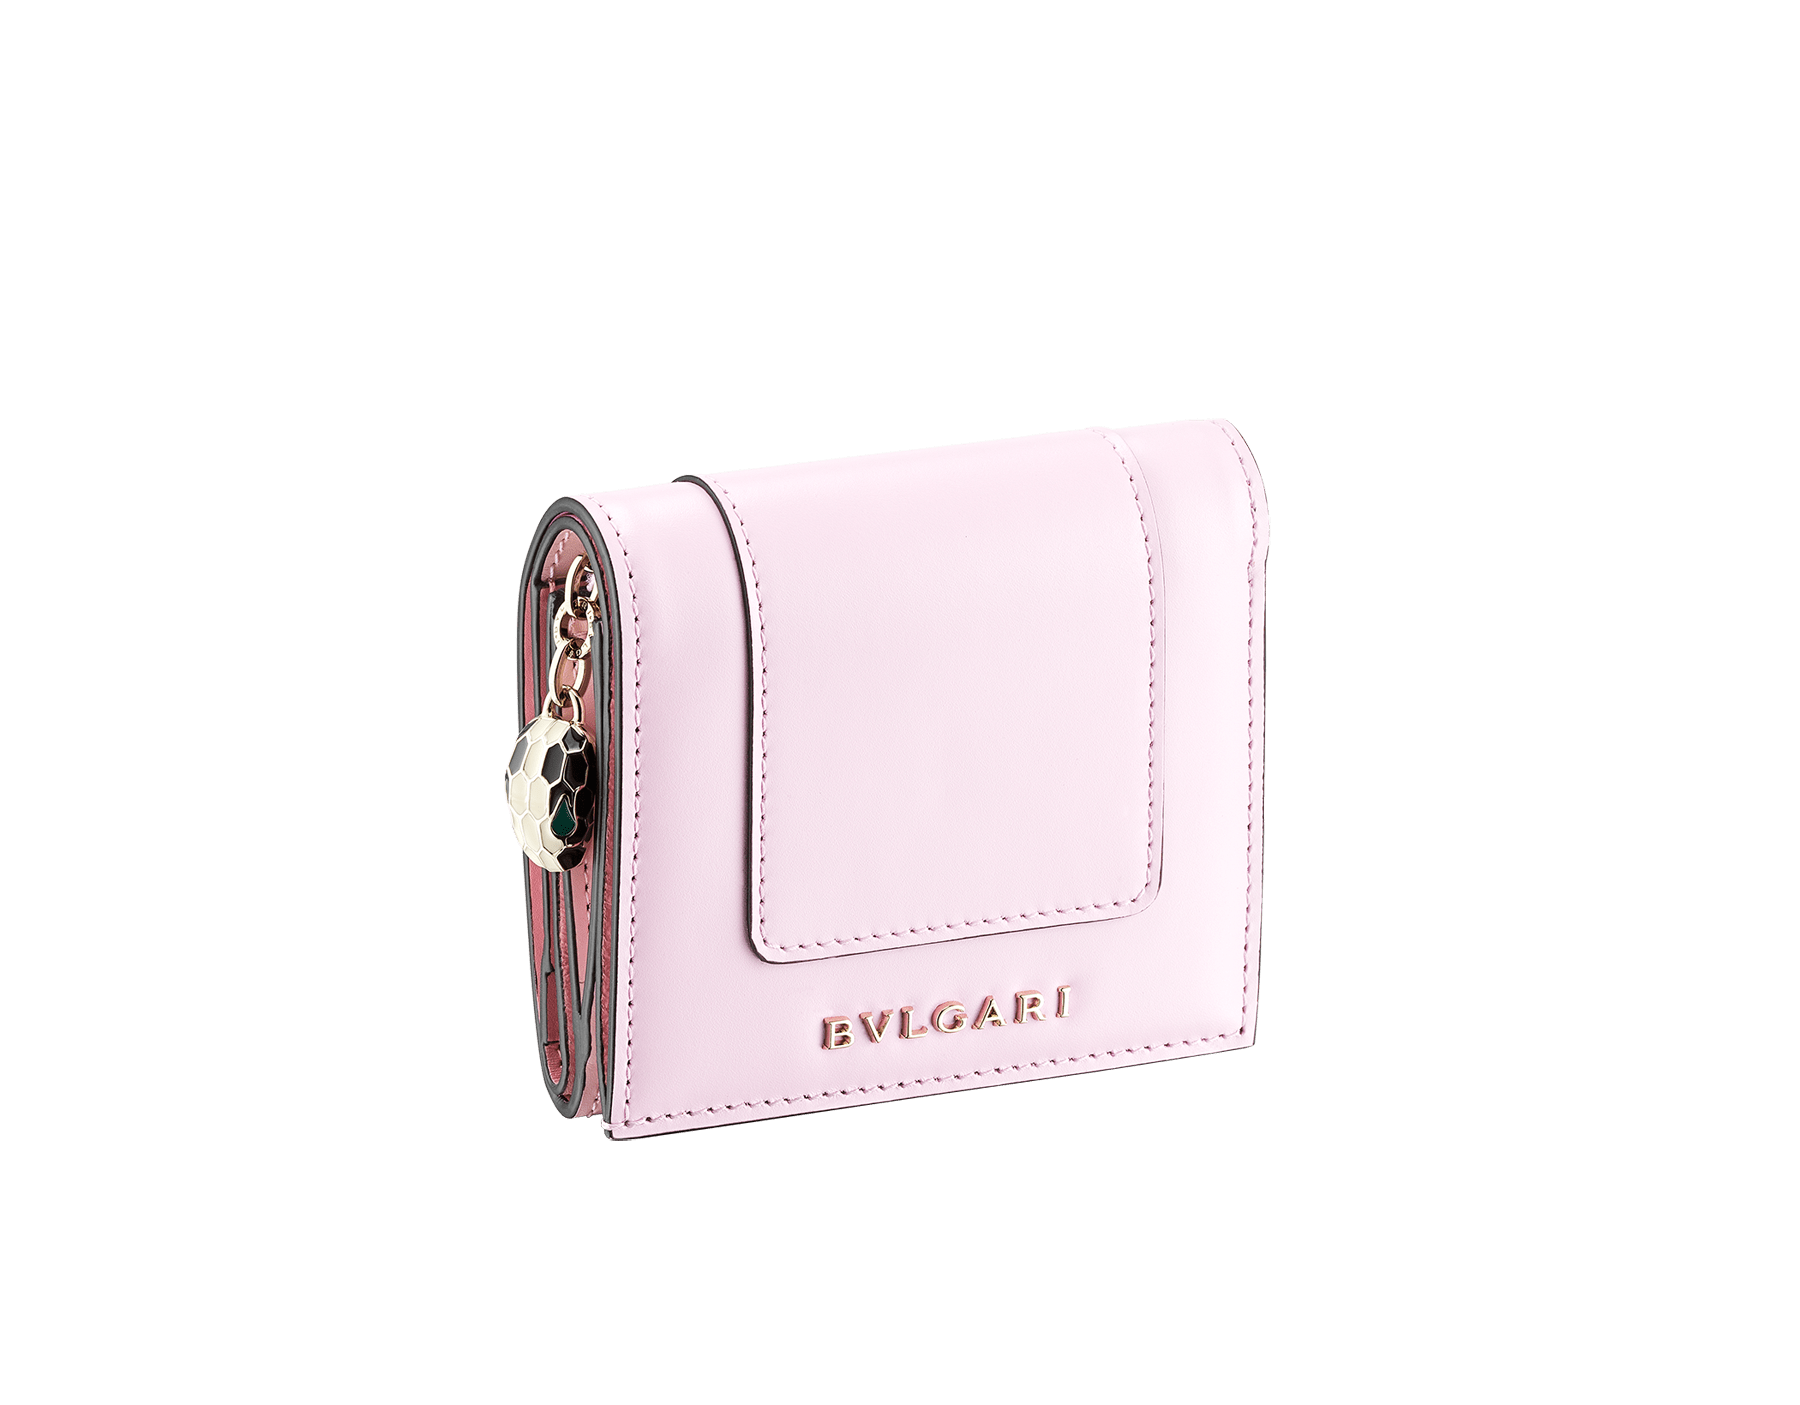 Serpenti Forever super compact wallet in rosa di francia and flamingo quartz calf leather. Iconic snakehead press stud closure in black and white enamel, with green malachite enamel eyes. 289061 image 1